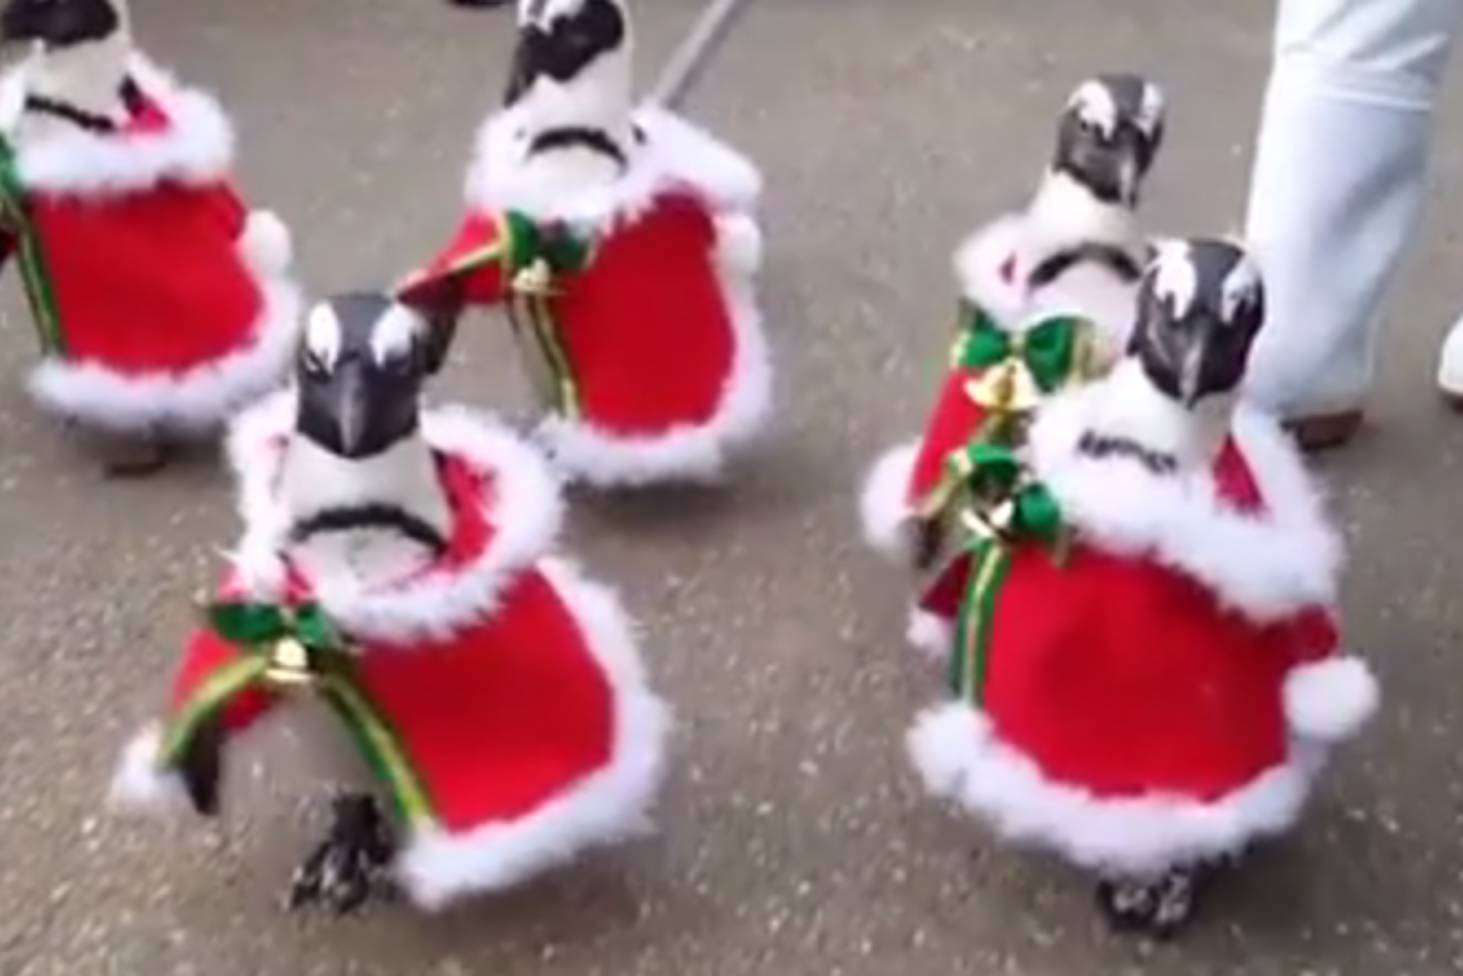 Penguins parade in Christmas outfits in Japanese park | Stuff.co.nz